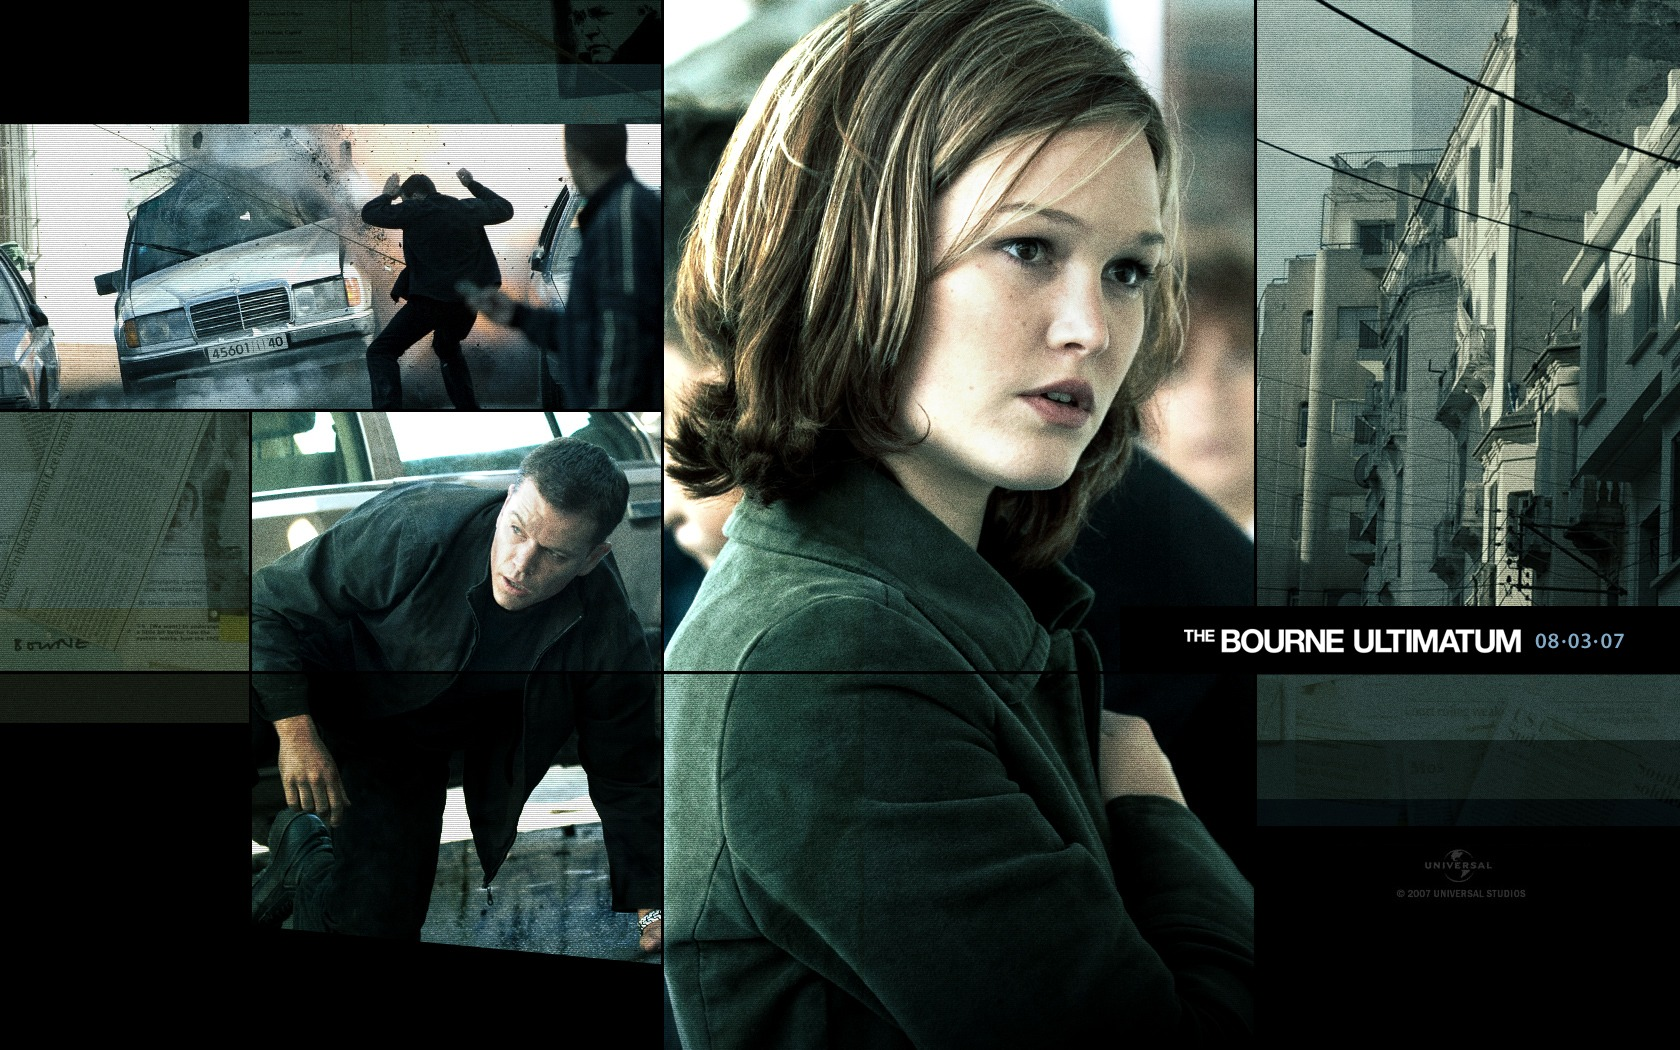 The bourne ultimatum download